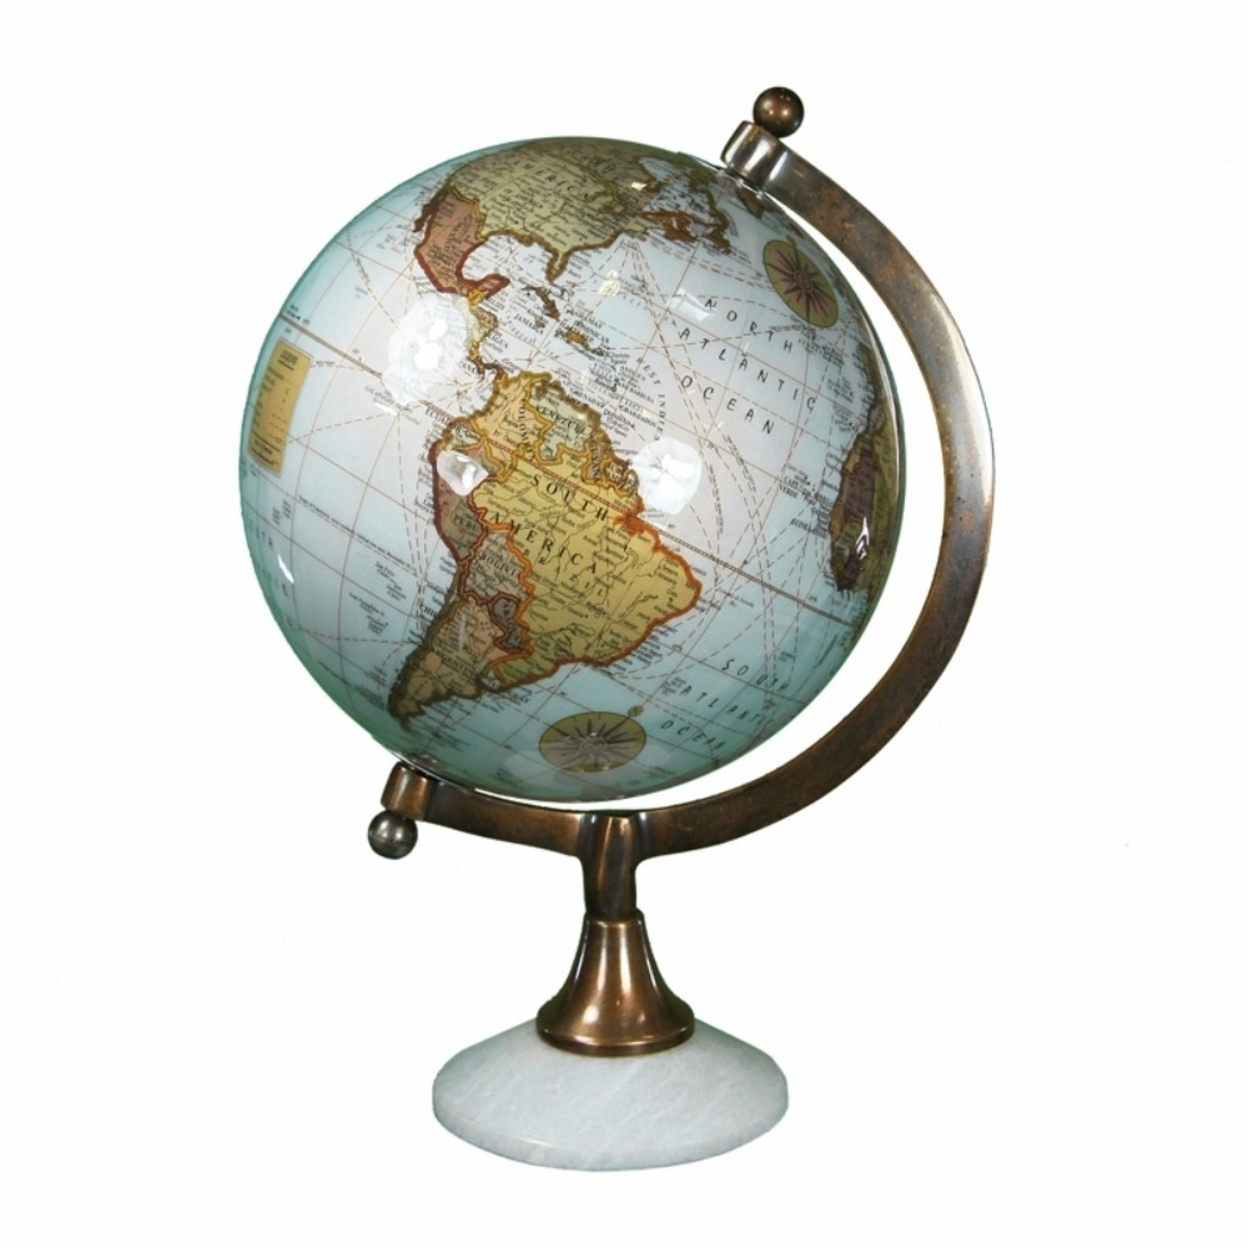 Minimalistic Globe With Marble Base, Multicolor 5a670cf3e224616b435ae154